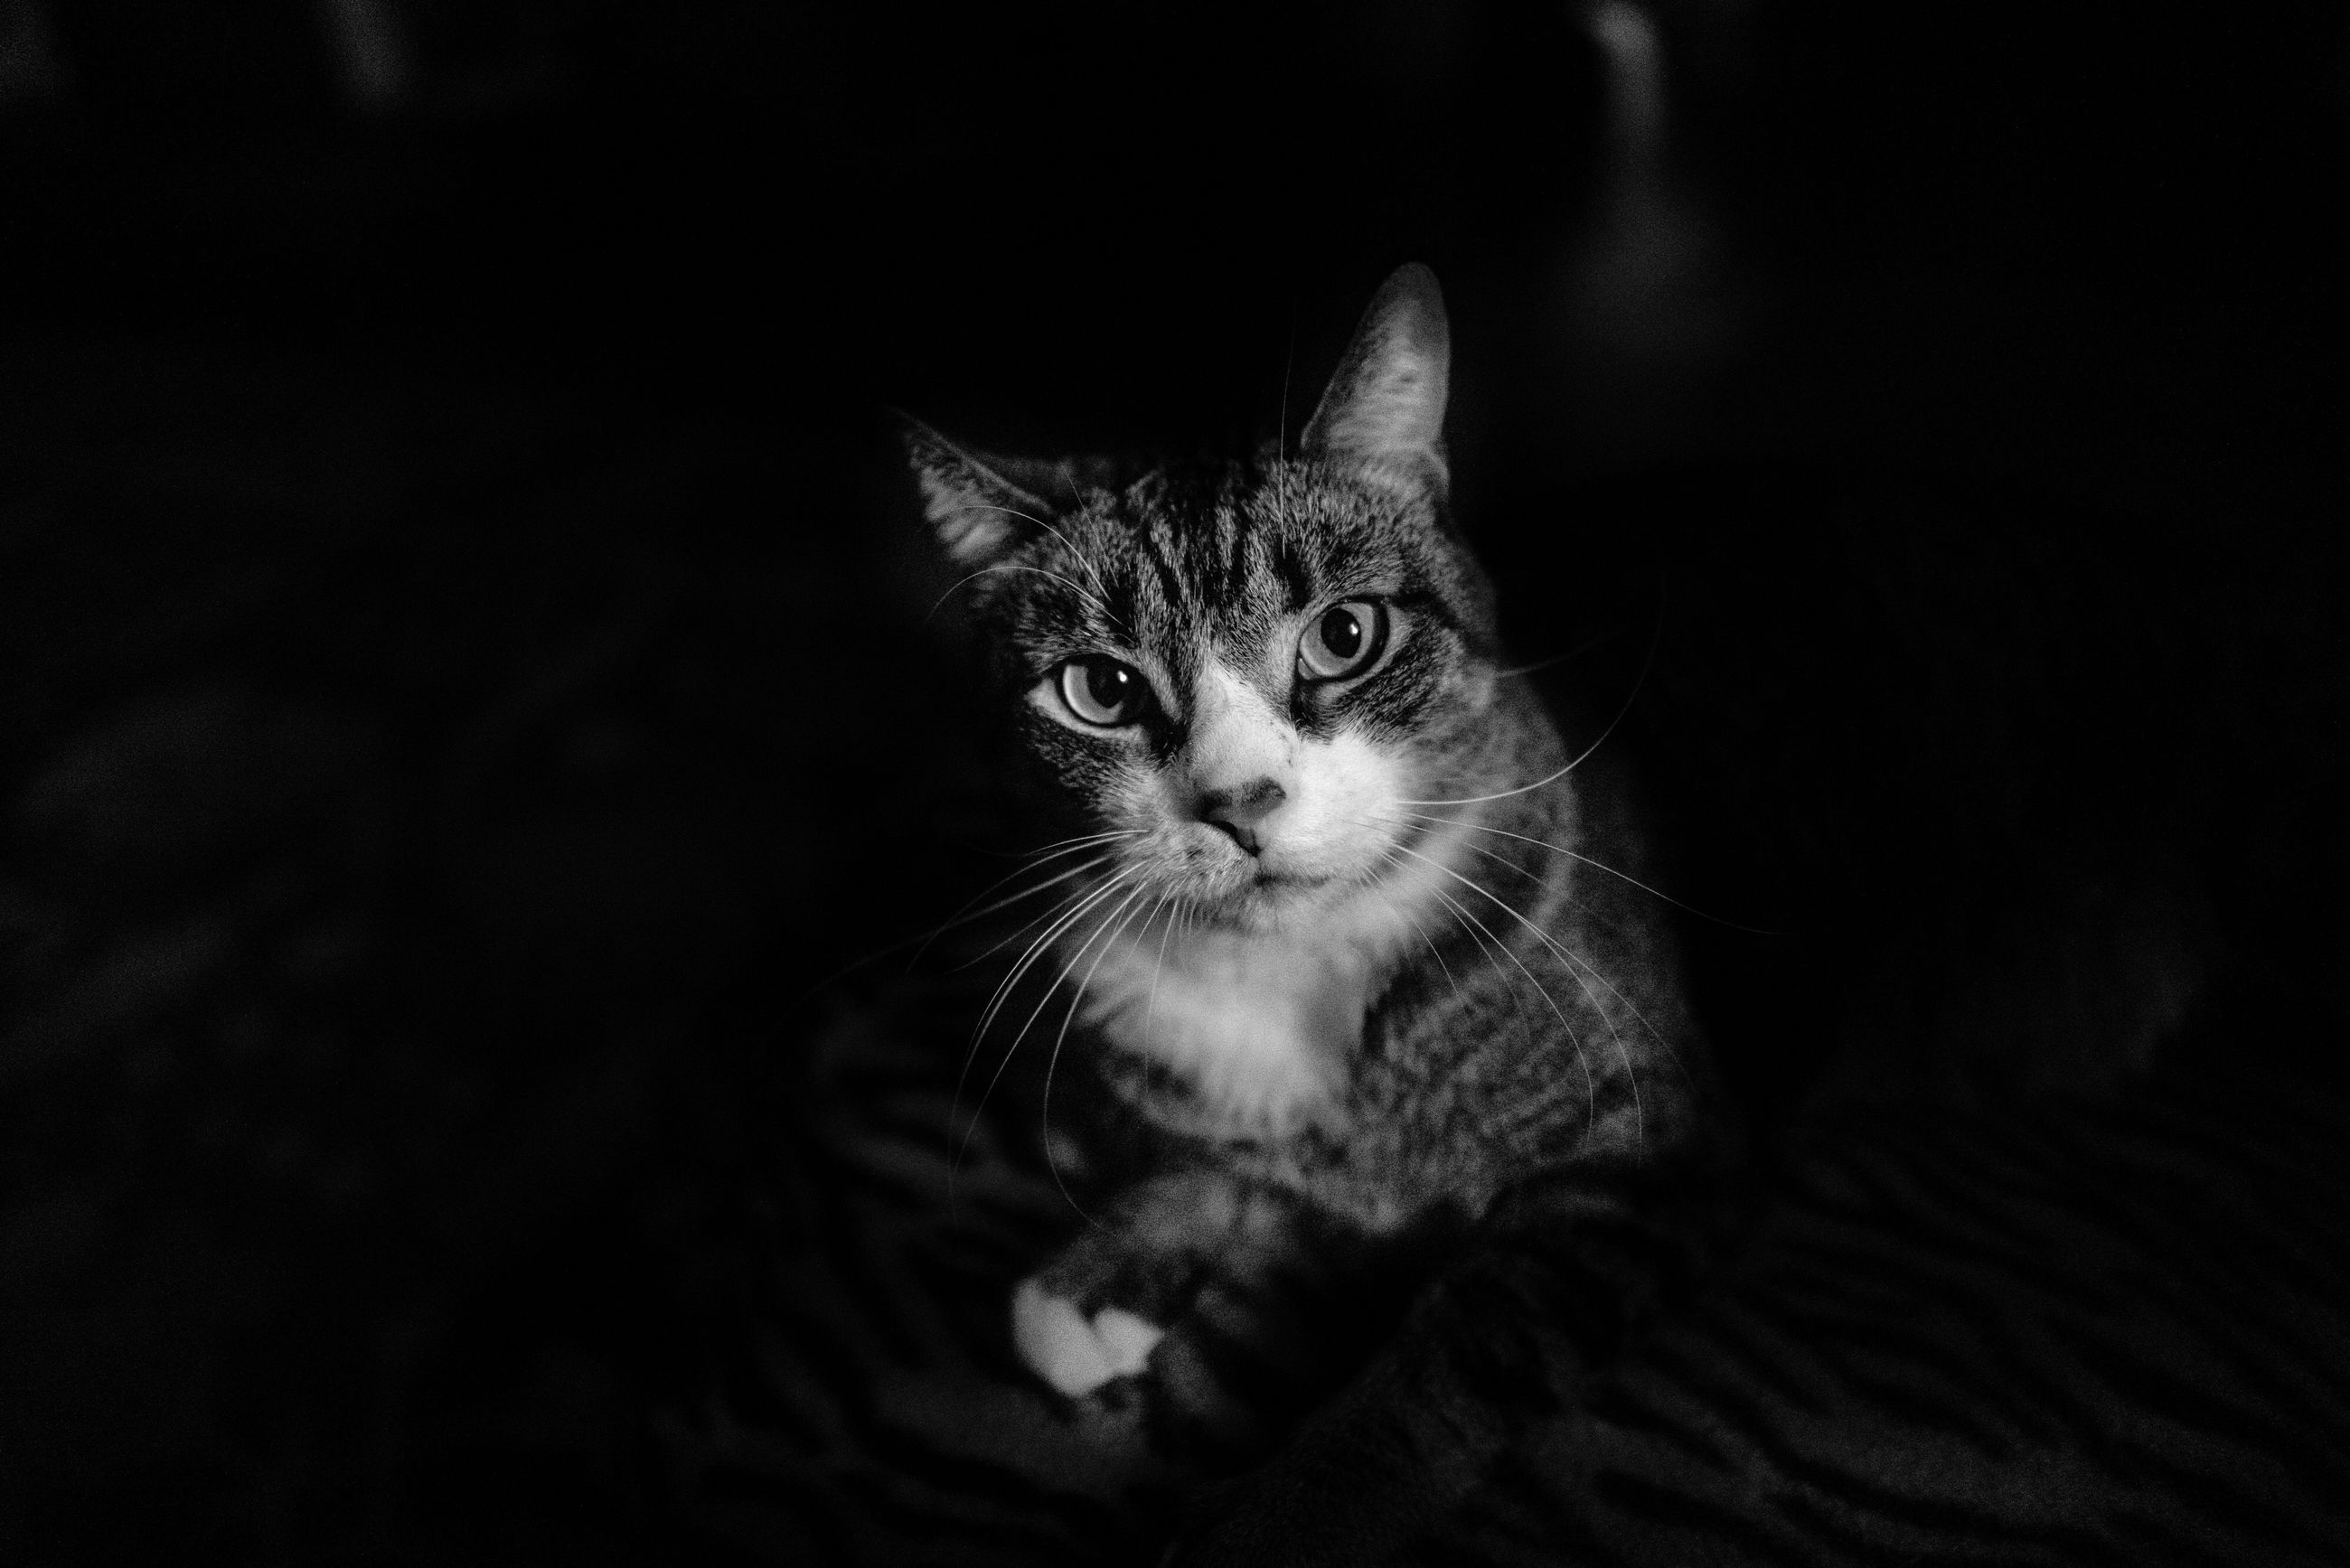 pets, cat, domestic, domestic animals, domestic cat, mammal, feline, one animal, vertebrate, looking at camera, portrait, no people, whisker, indoors, young animal, kitten, animal body part, animal eye